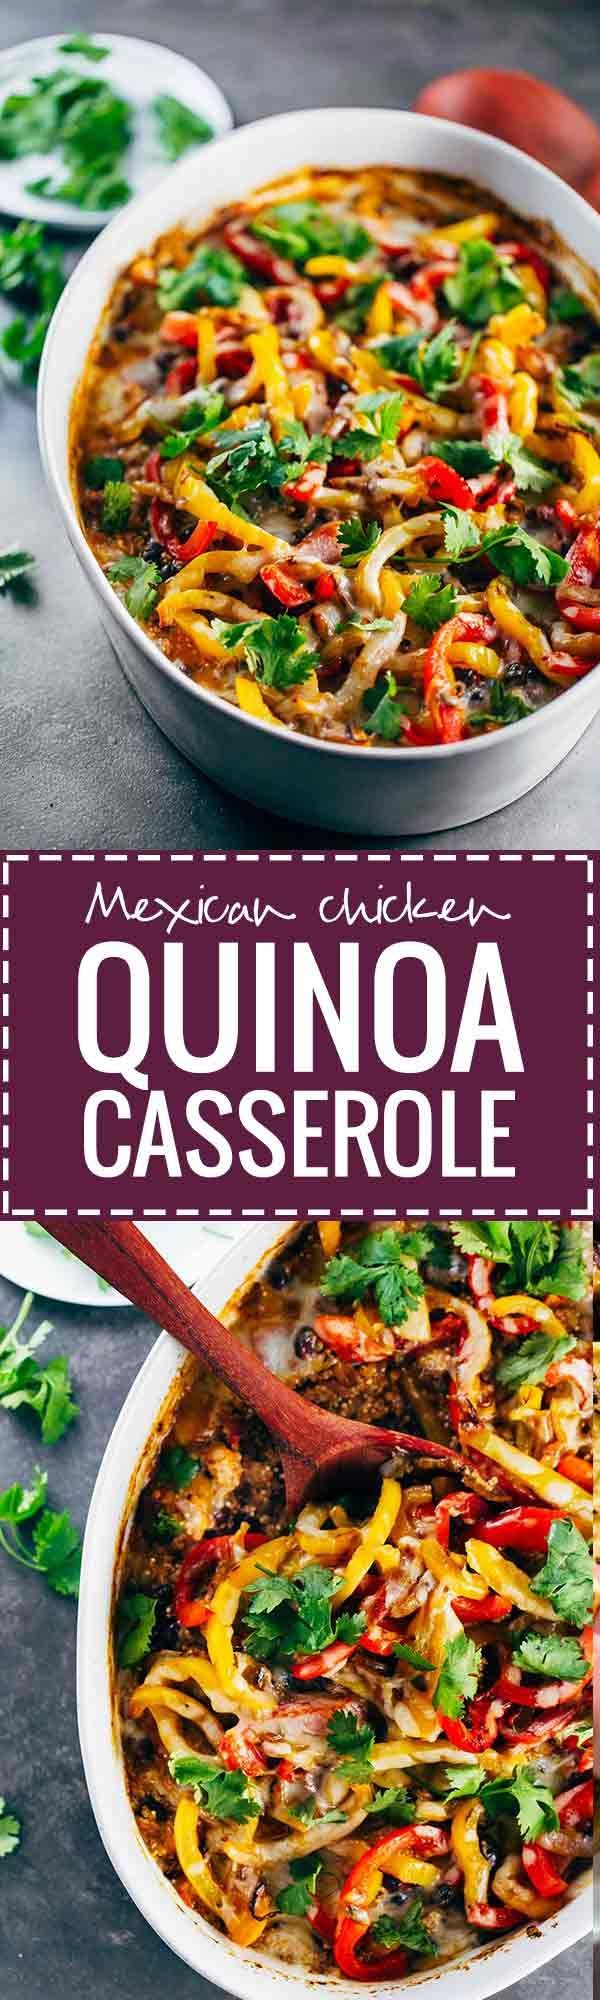 Easy Mexican Chicken Quinoa Casserole - simple, healthy, real food ingredients!